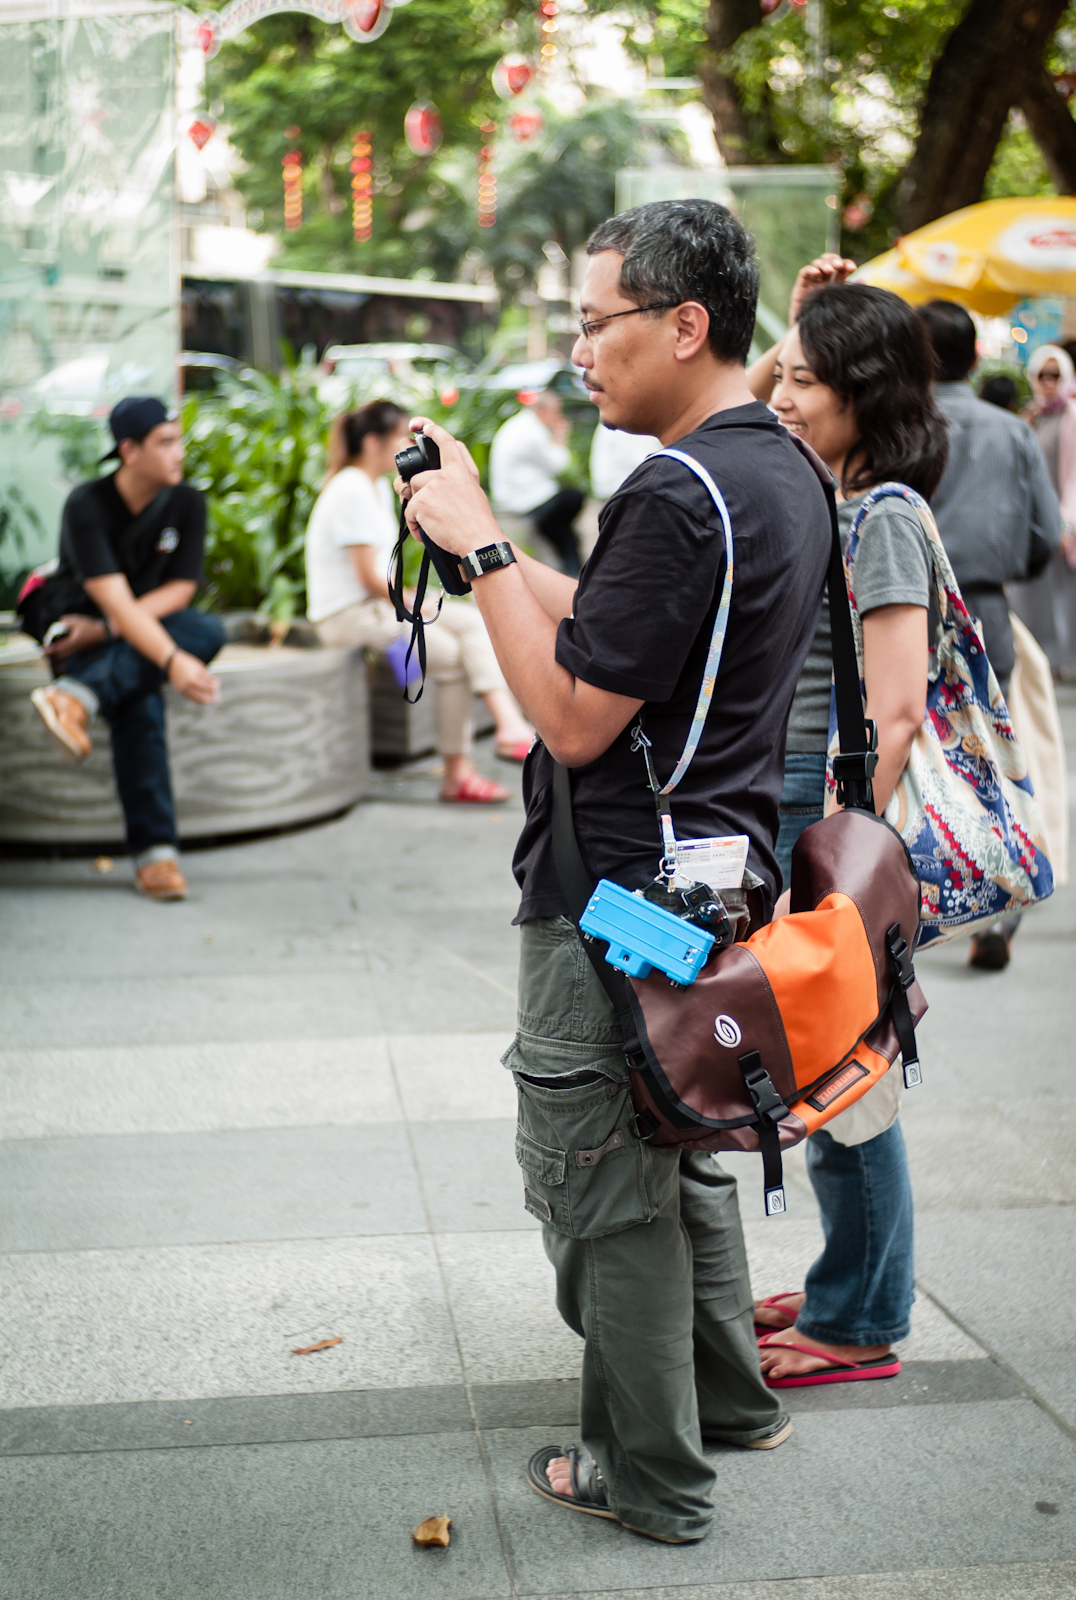 A man with cameras dangling from his bag